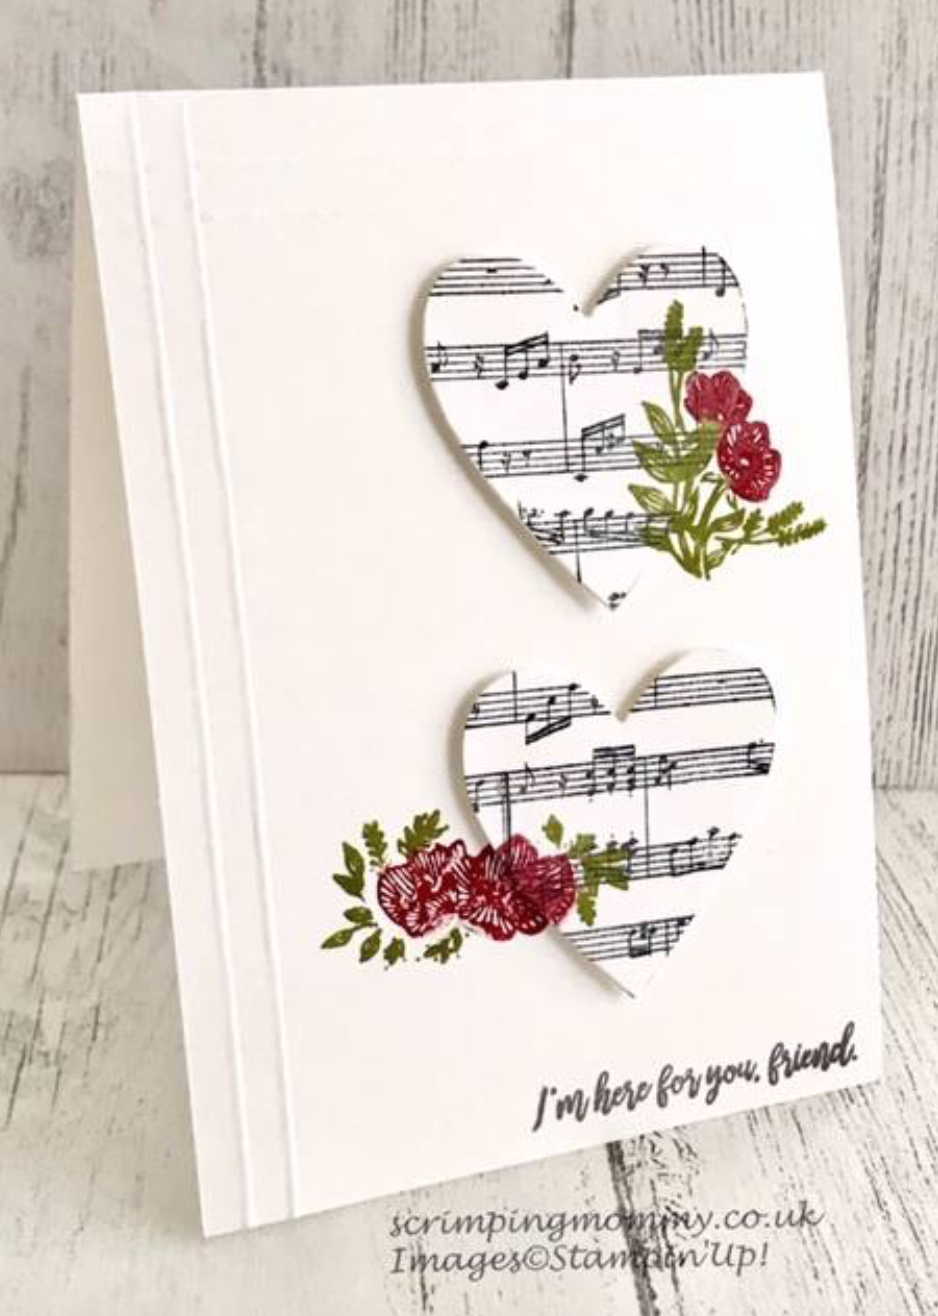 Handmade greeting card with music score hearts #handmade #card